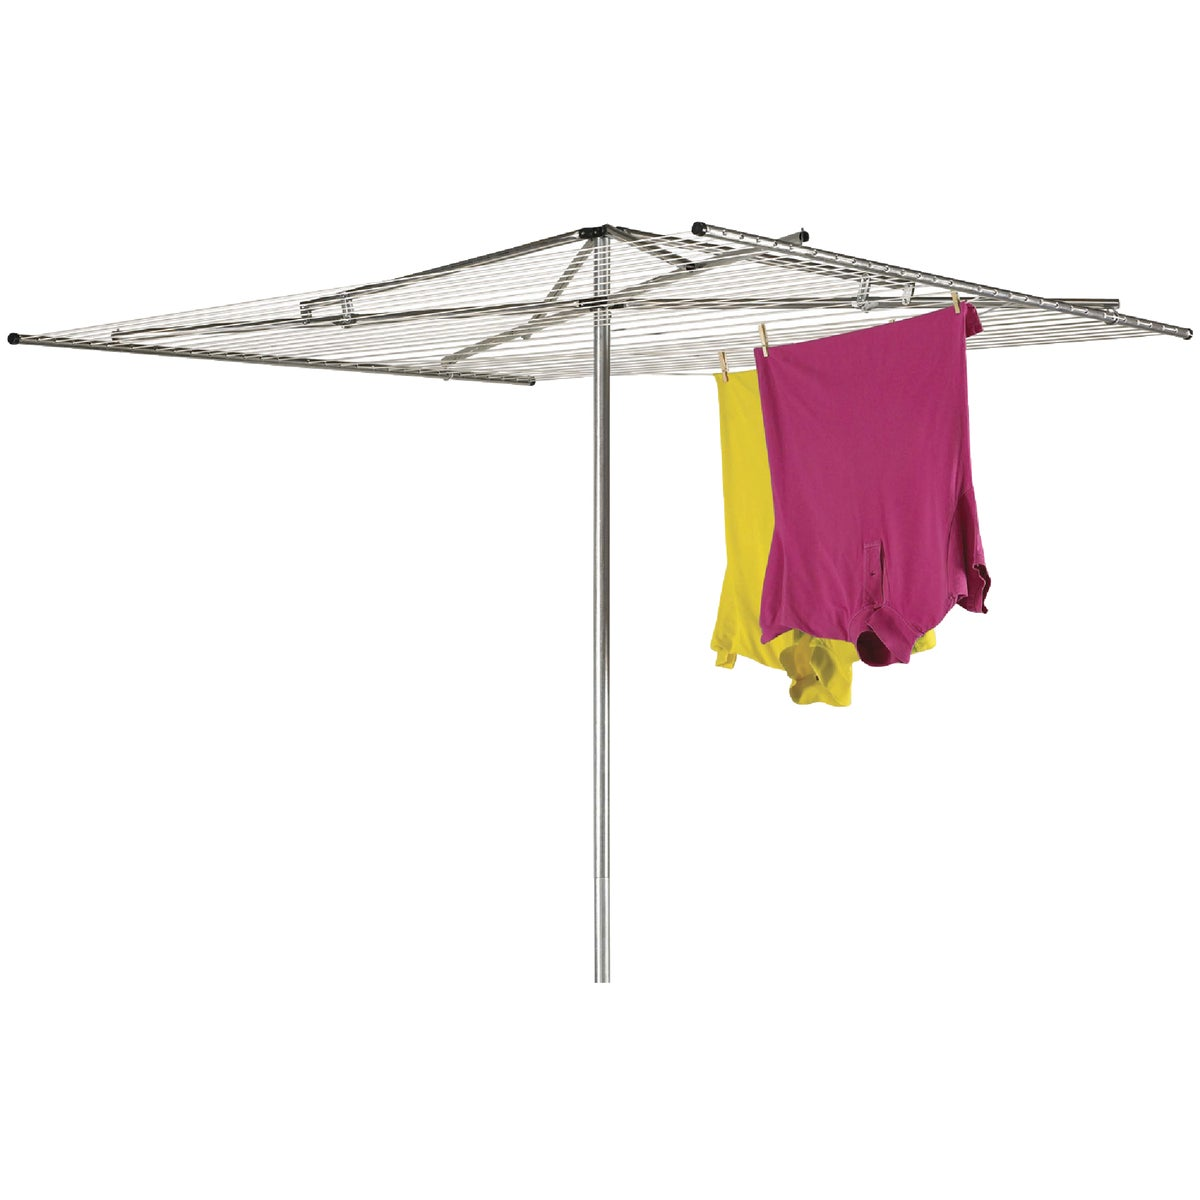 OUTDOOR CLOTHES DRYER - 3000 by Household Essentials